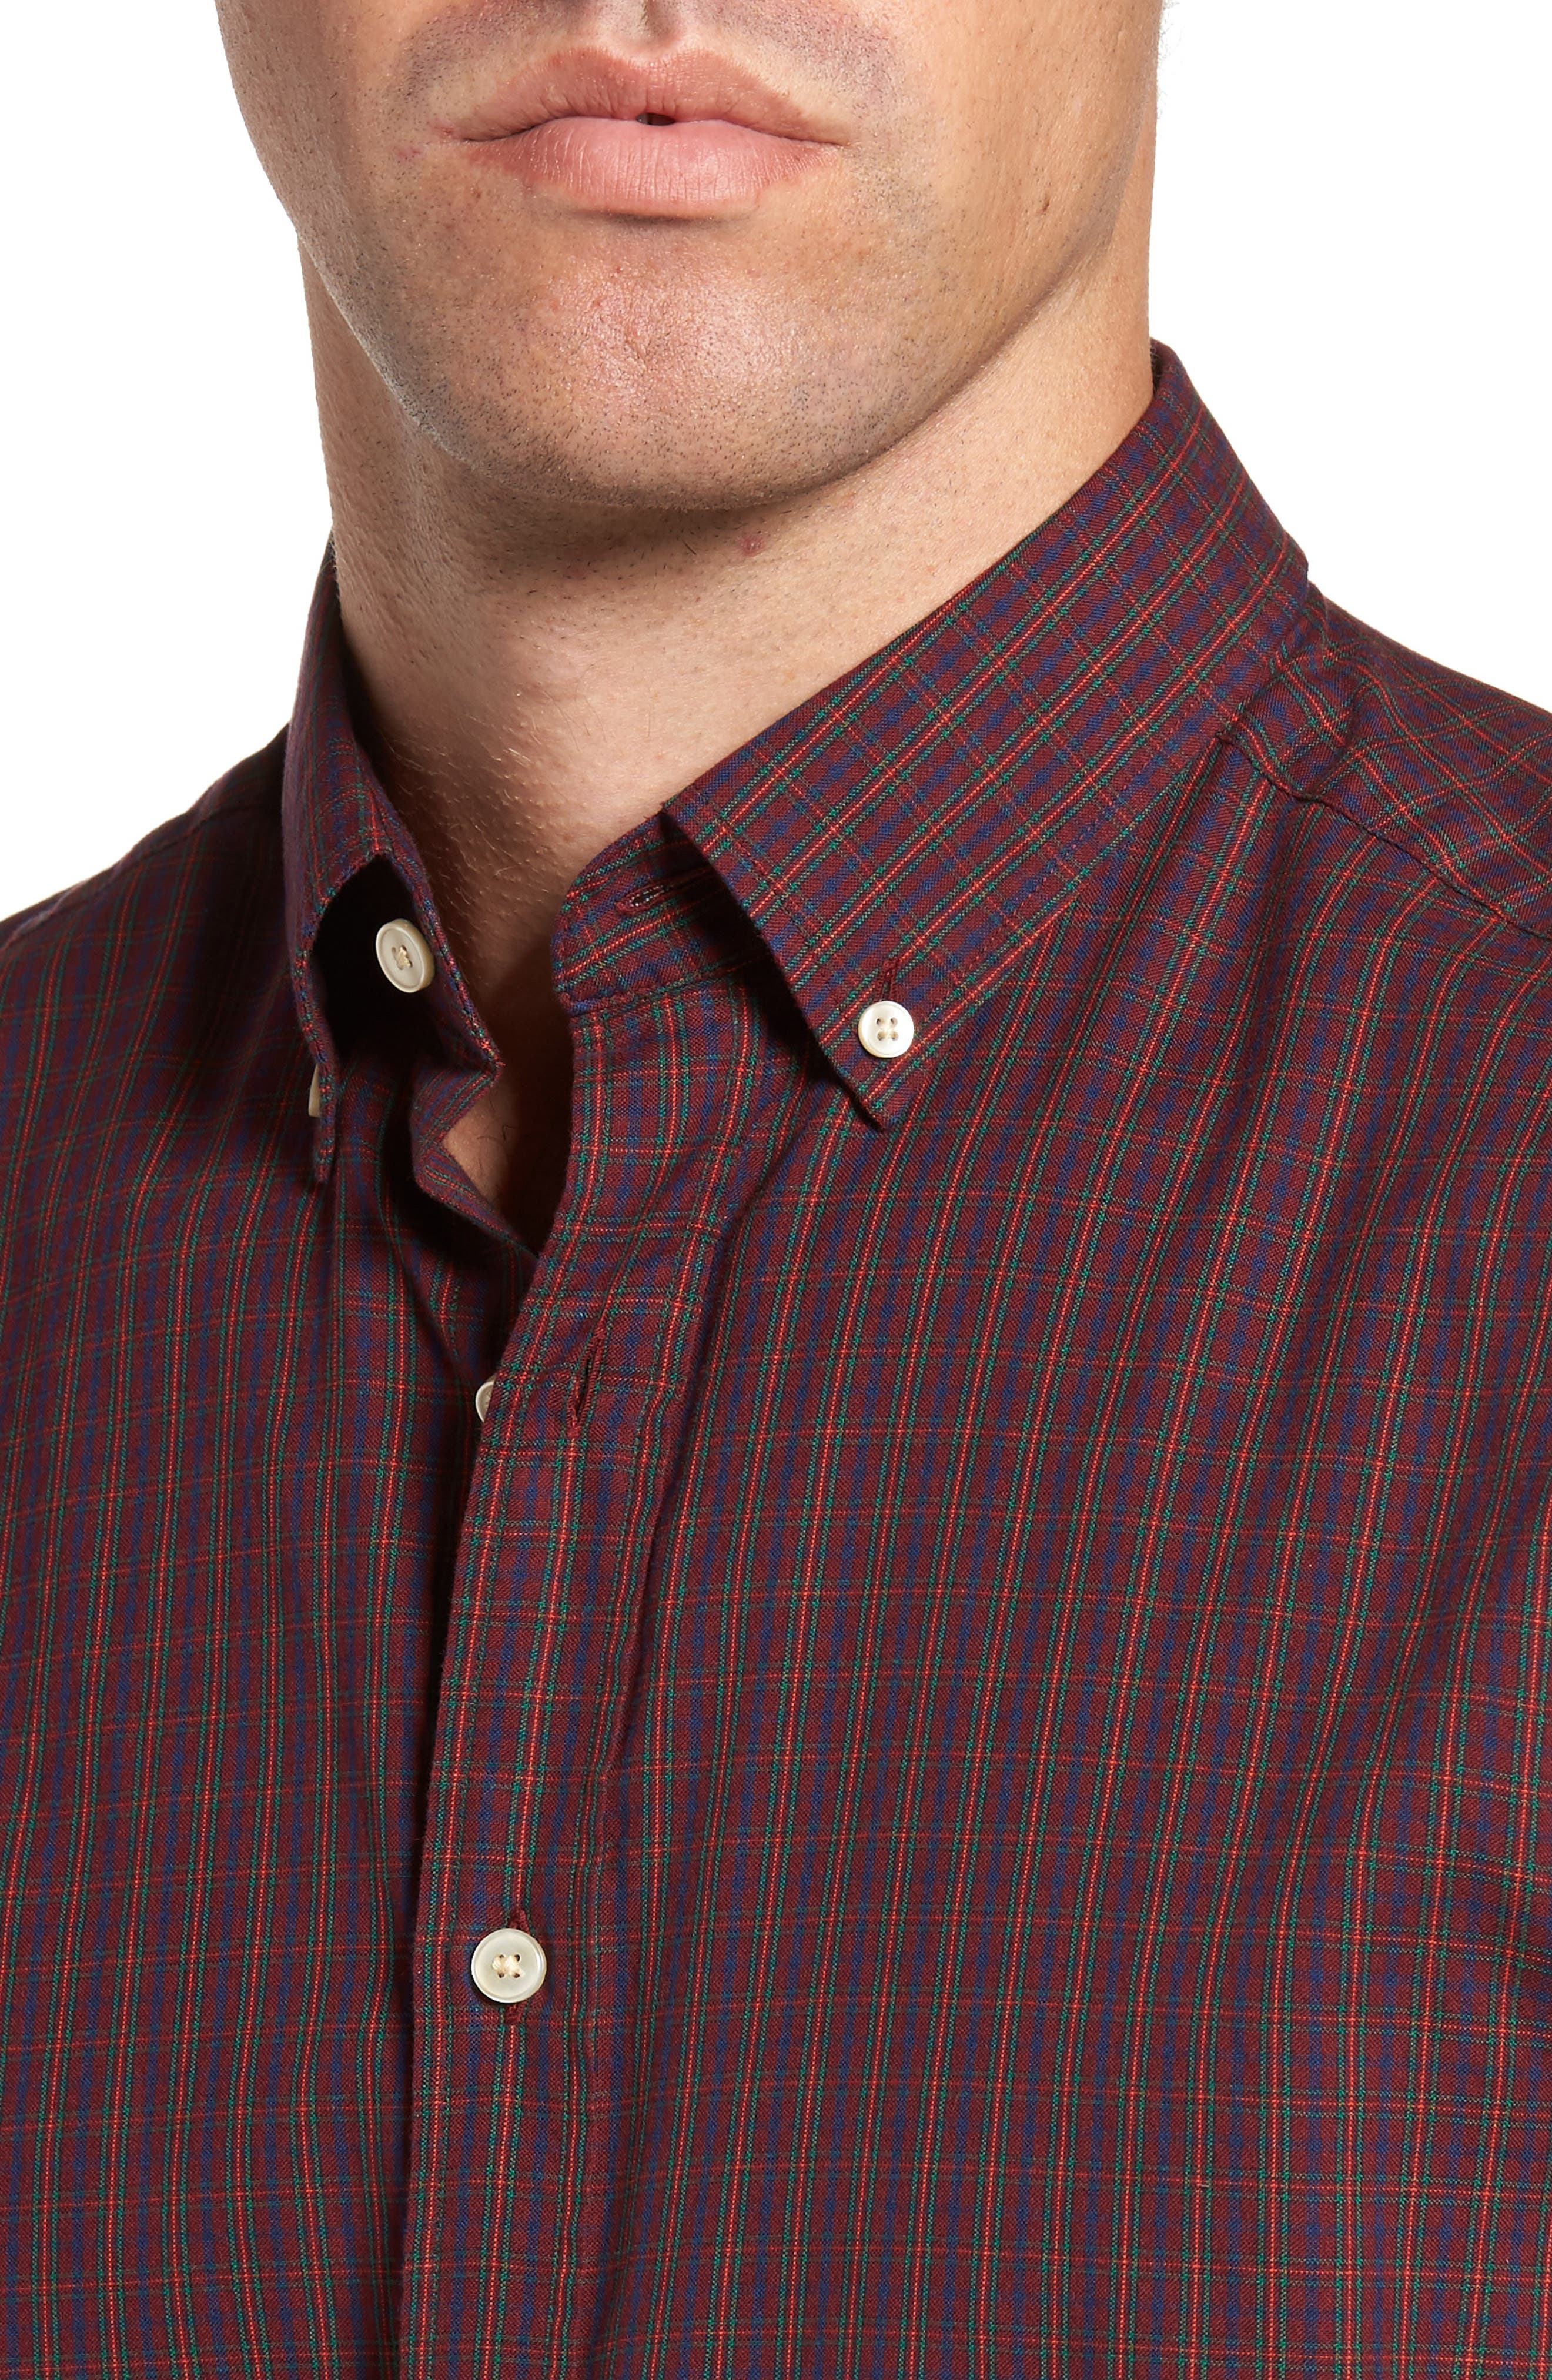 Windblown Slim Fit Oxford Sport Shirt,                             Alternate thumbnail 4, color,                             Purple Wine